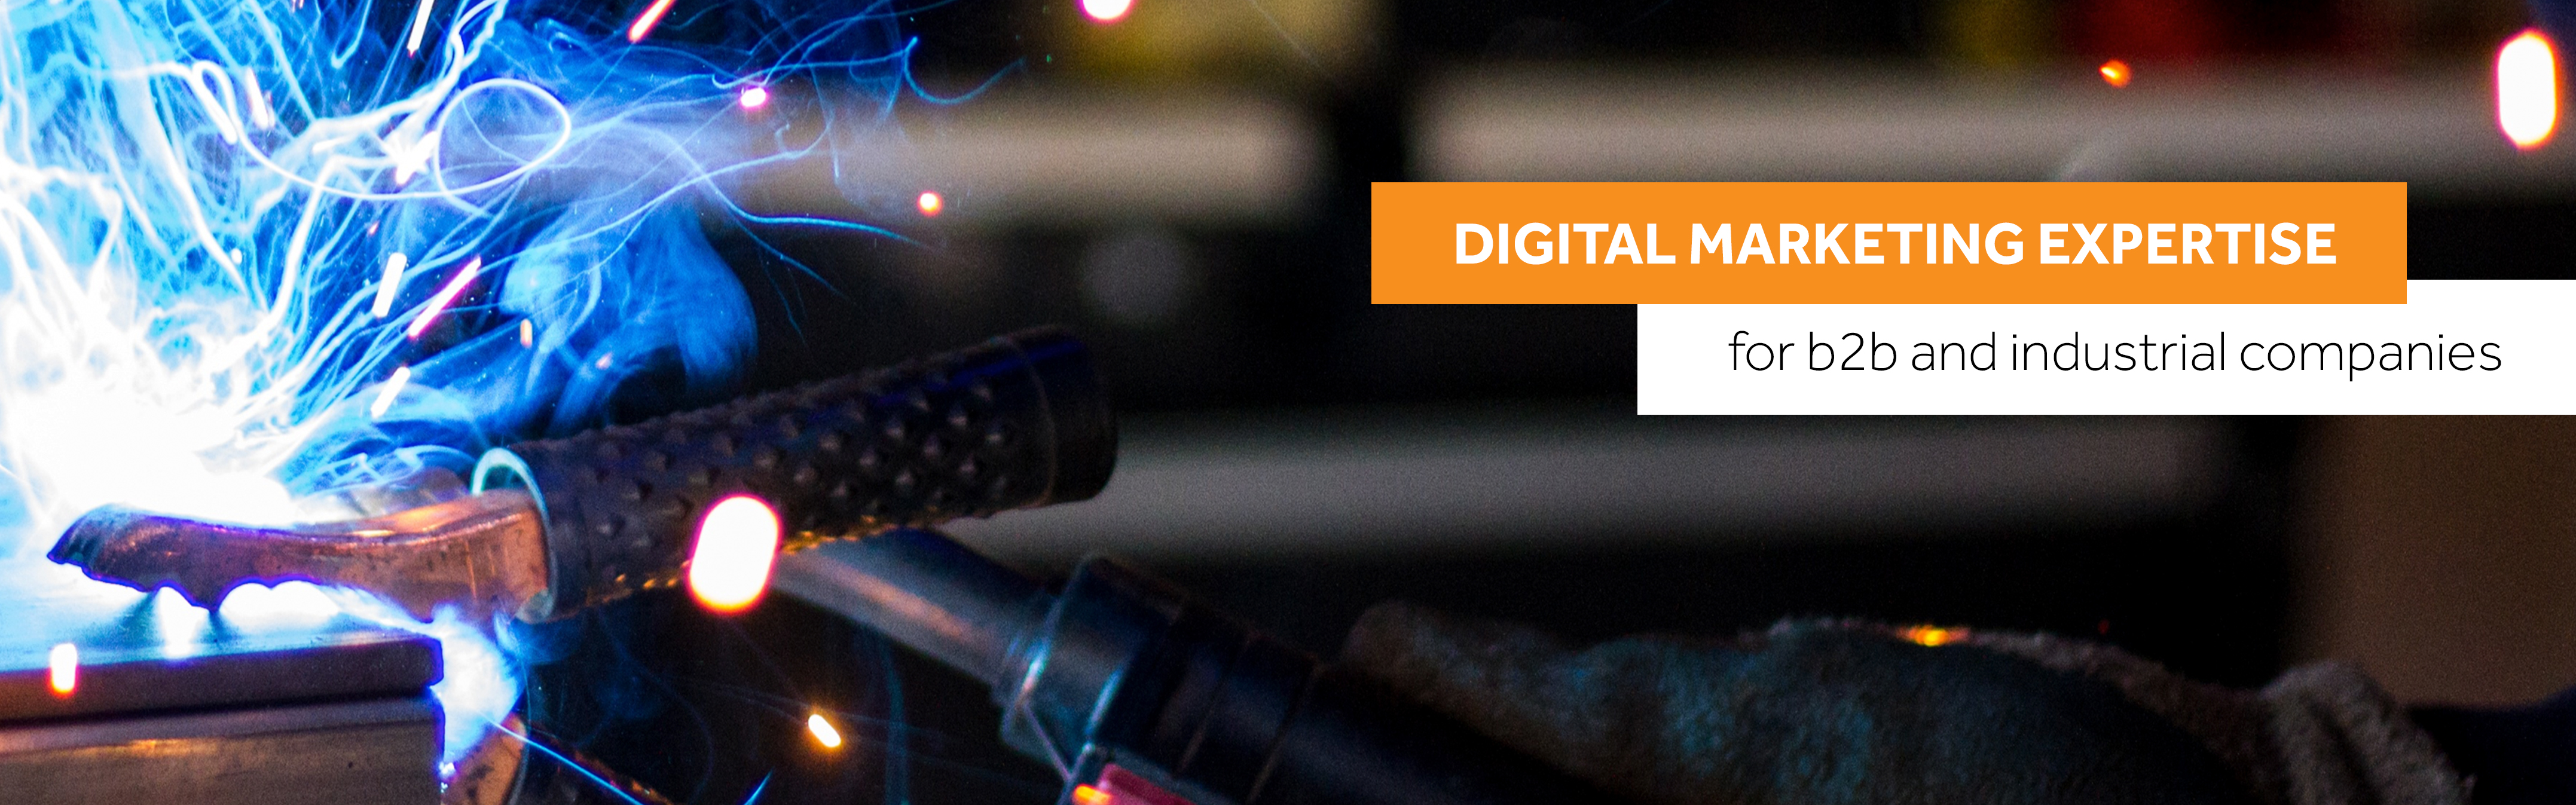 Manufacturing Video Podcasts and Blogs about Digital Marketing Expertise for B2B and Industrial Companies